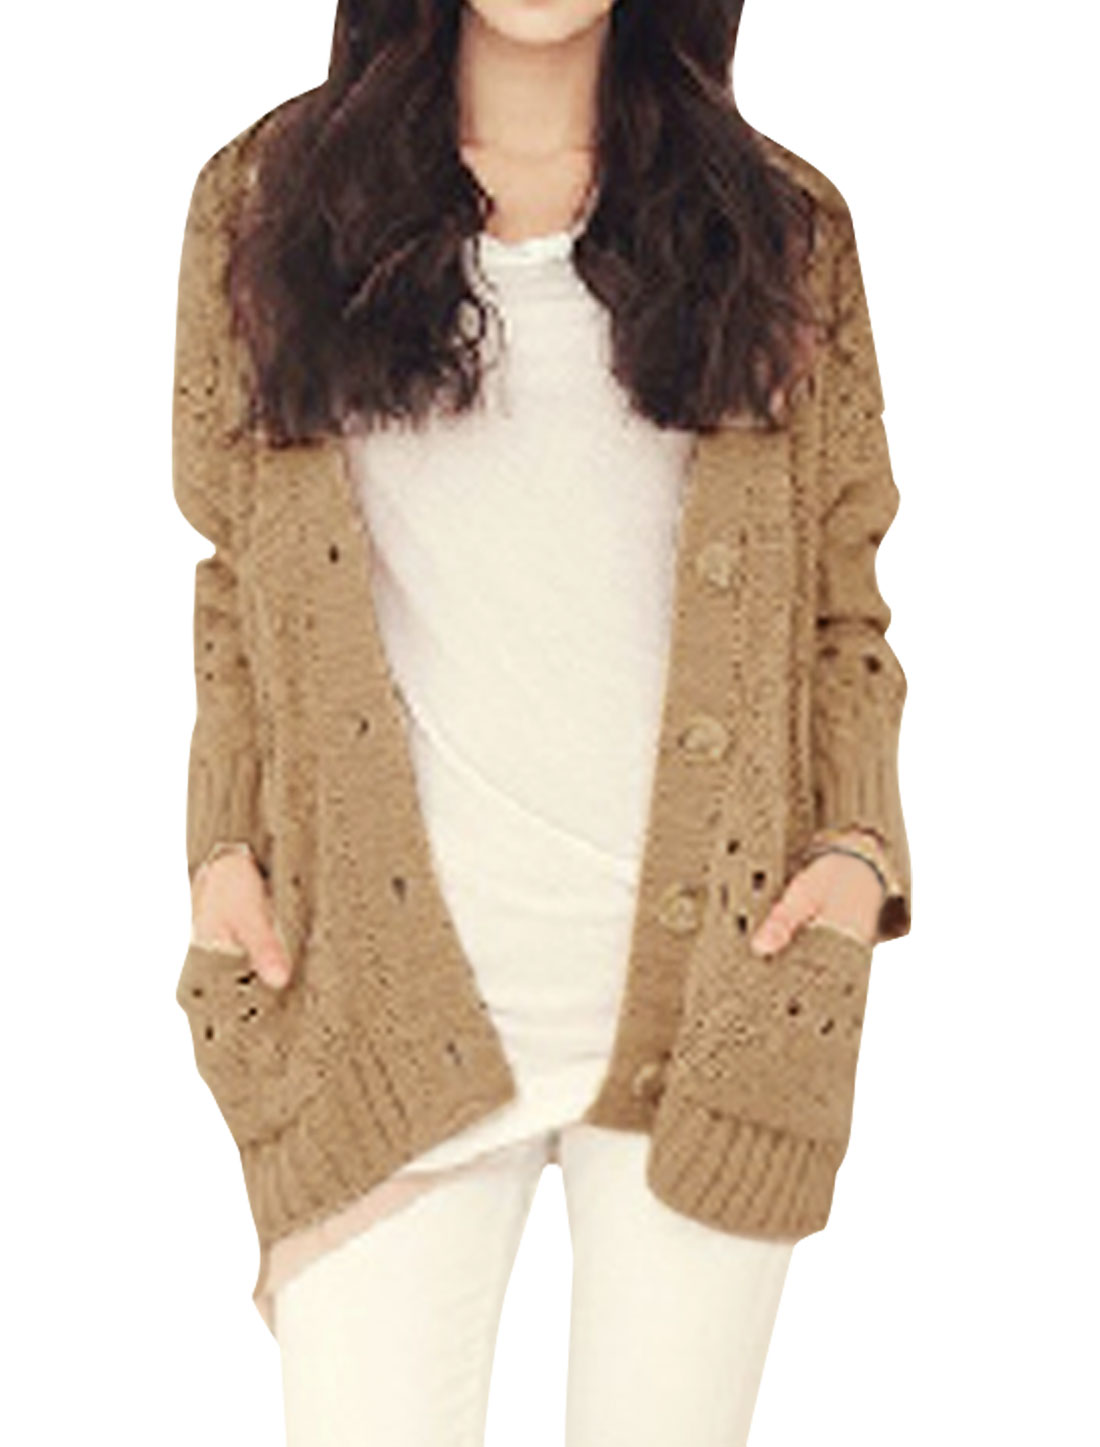 Ladies Khaki L Button Front V Neck Style Solid Color Stretchy Top Cardigan